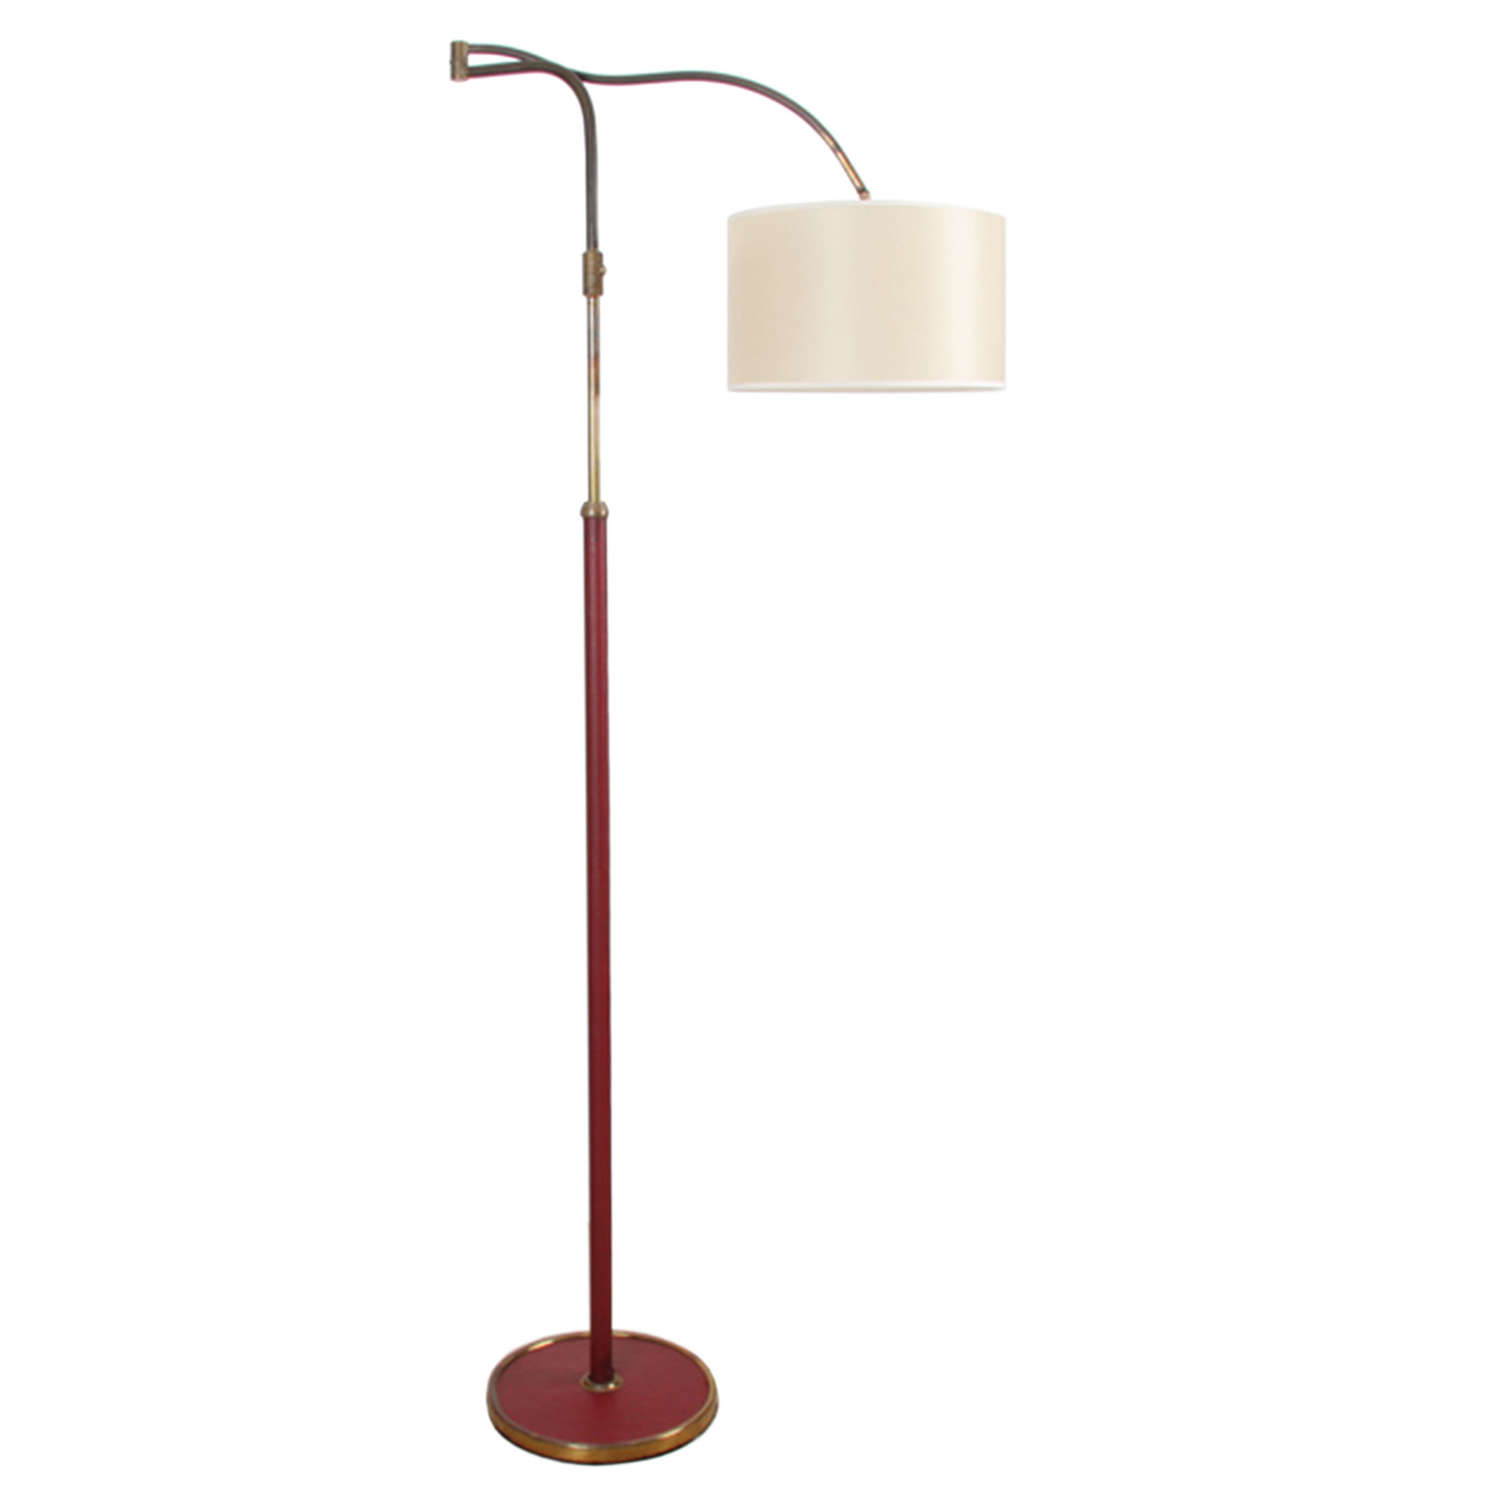 Italian 1950s Red Leather and Brass Swing Arm Floor Lamp